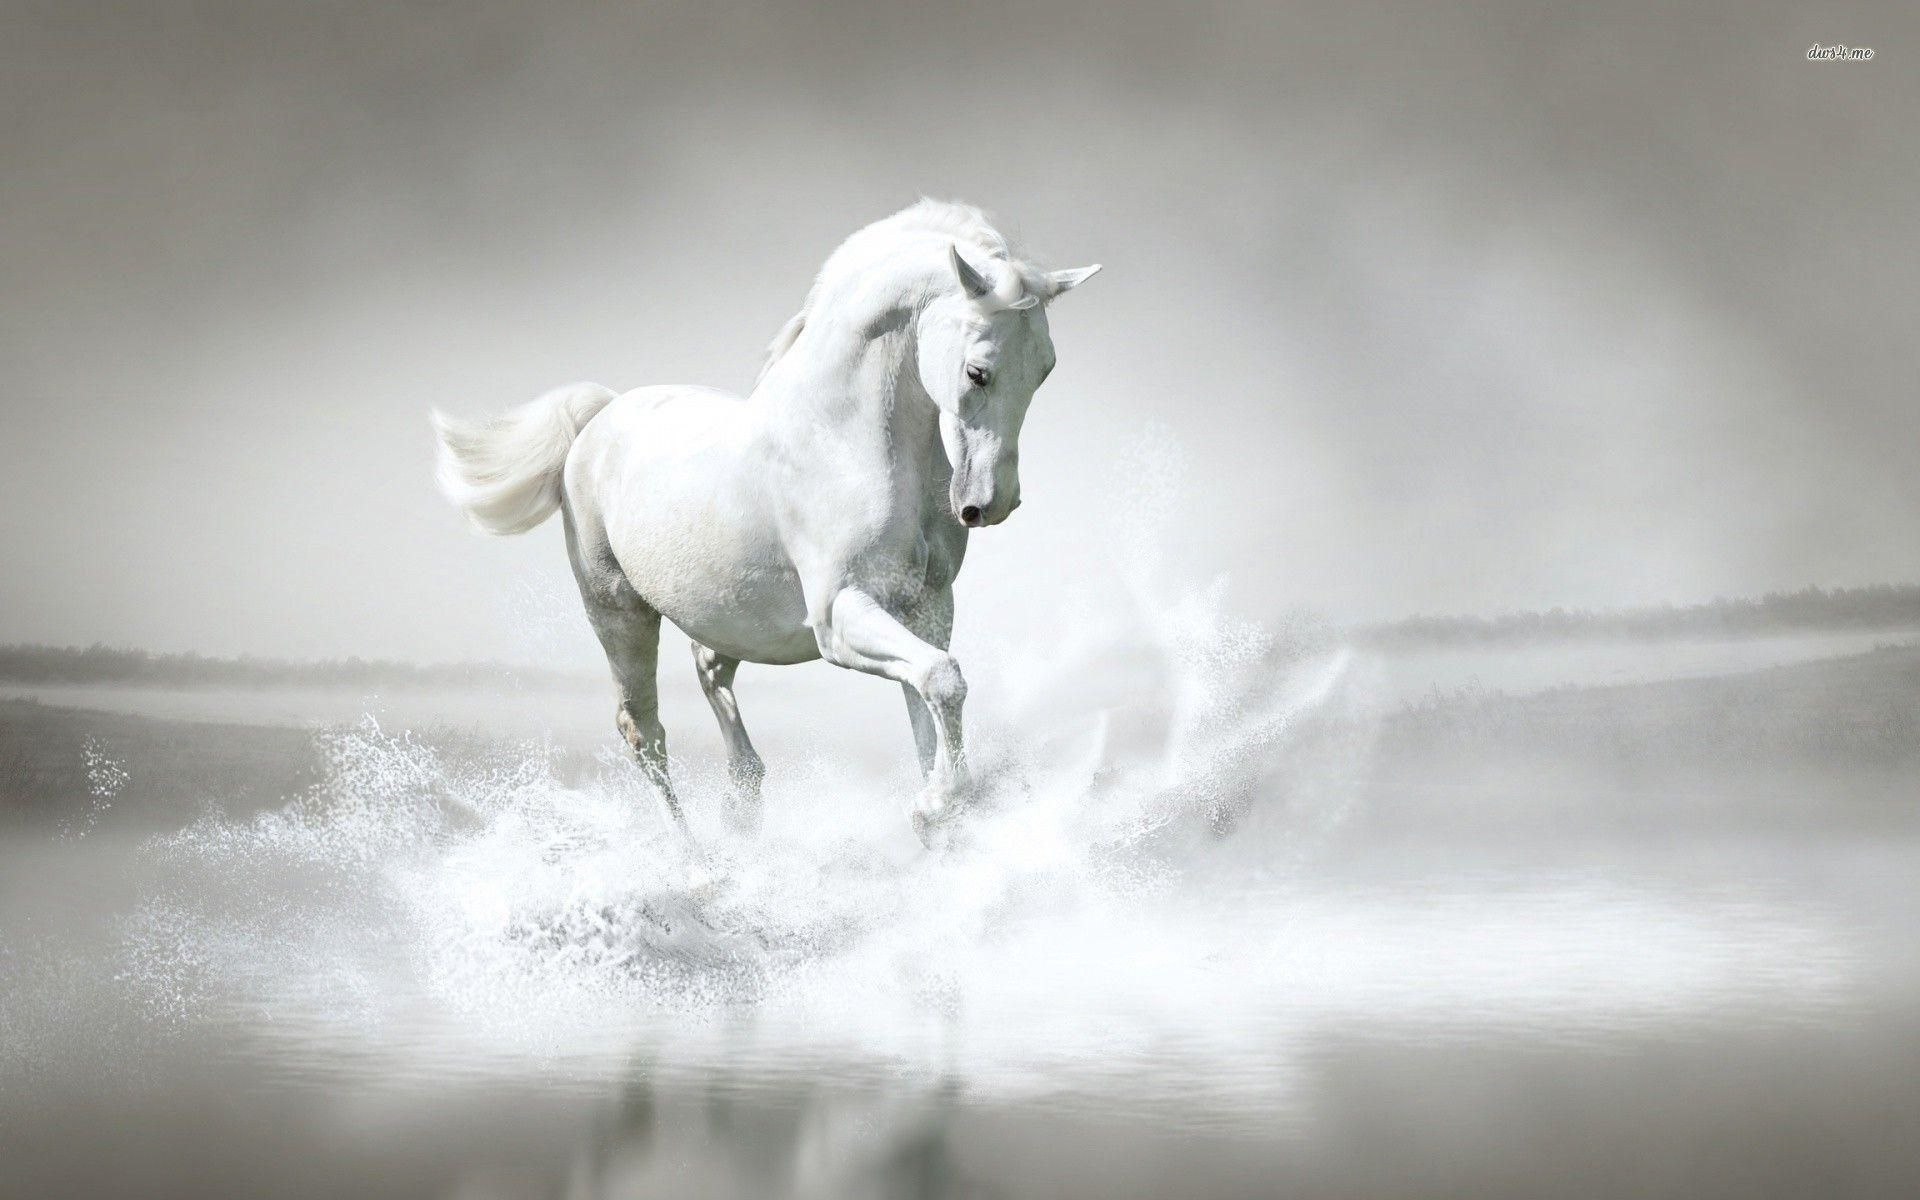 Horse Full HD Wallpaper and Background 2560x1440 ID432346 Horse 1920x1200